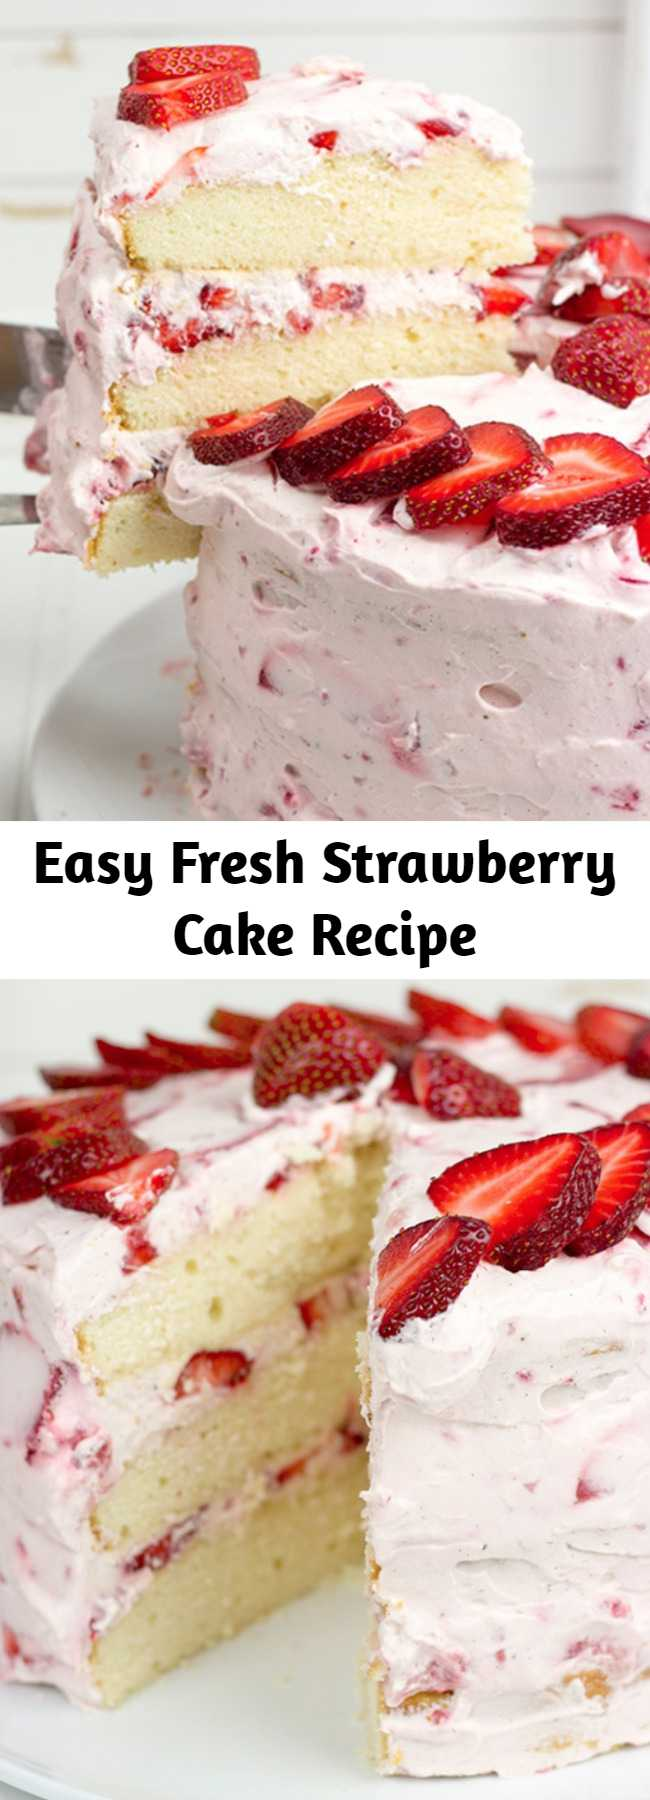 Easy Fresh Strawberry Cake Recipe - This cake features loads of fresh strawberries and a light whipped cream topping. It's PERFECT for summer!!